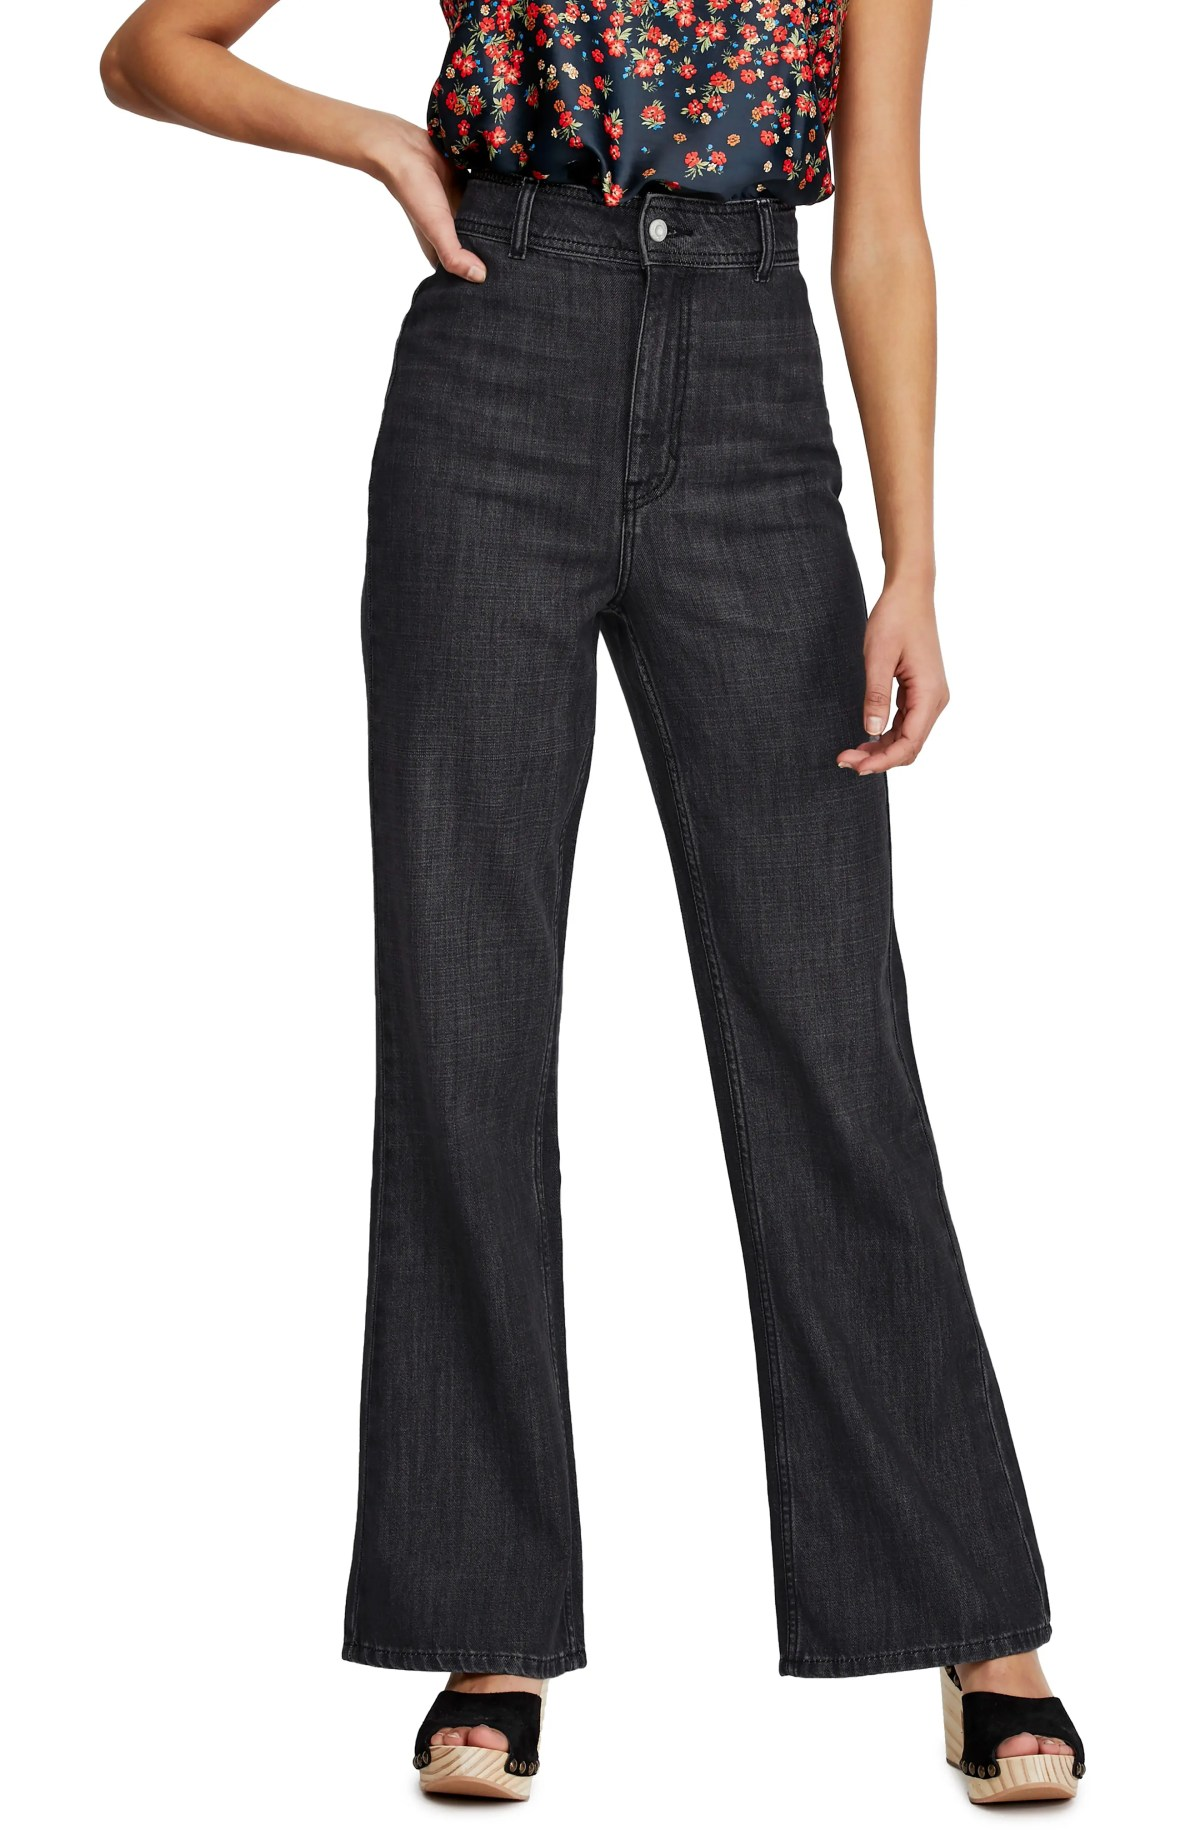 FREE PEOPLE Mindy Flare Jeans, Main, color, BLACK